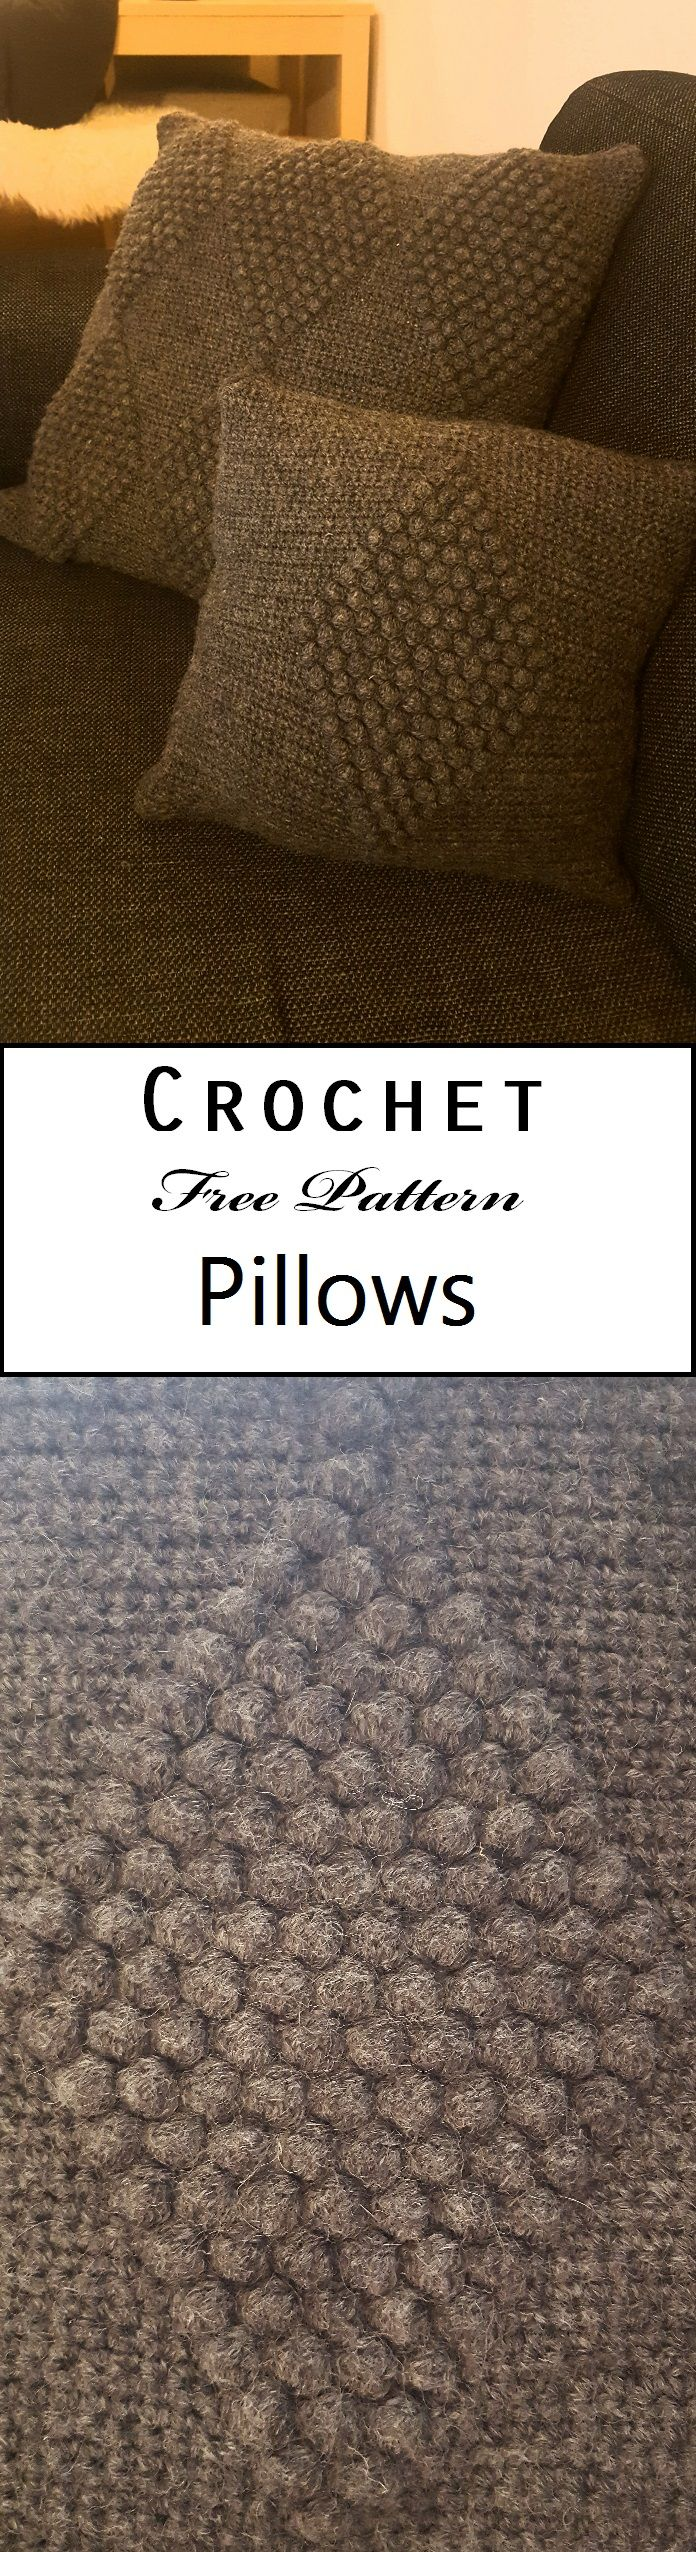 [FREE PATTERN] Crochet pillows with bobblestitches.